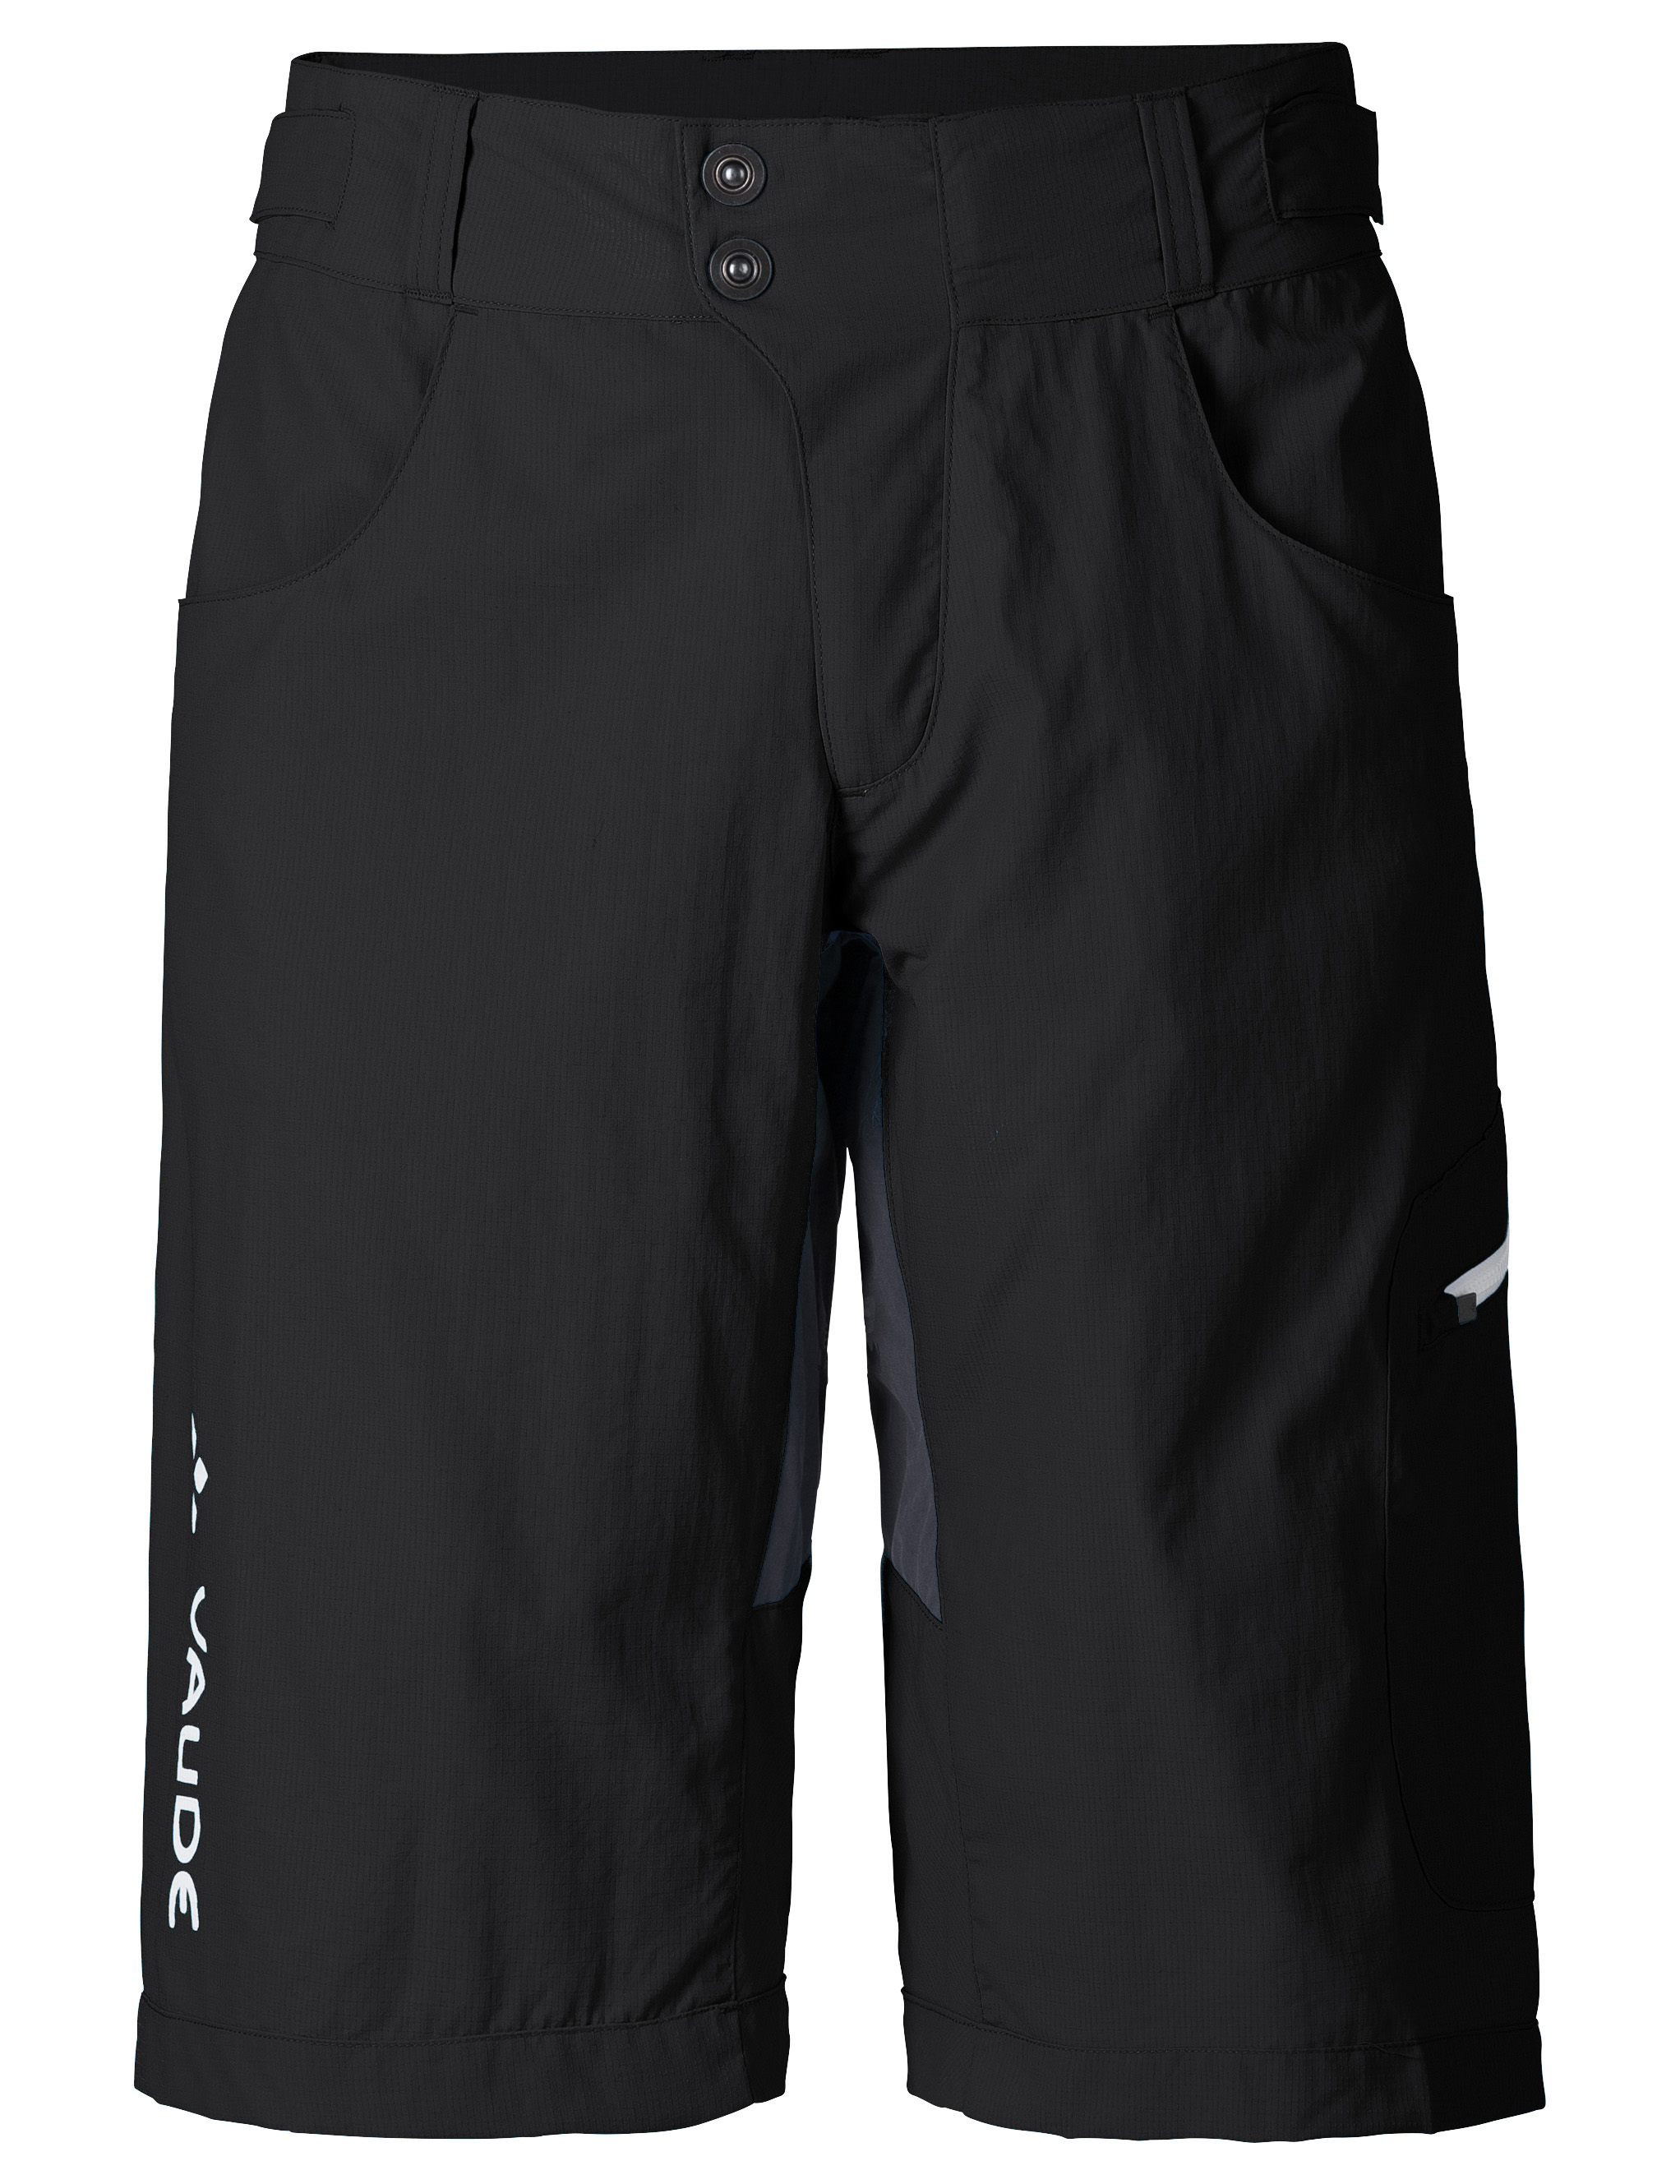 Men´s Brand Shorts black Größe XS - schneider-sports